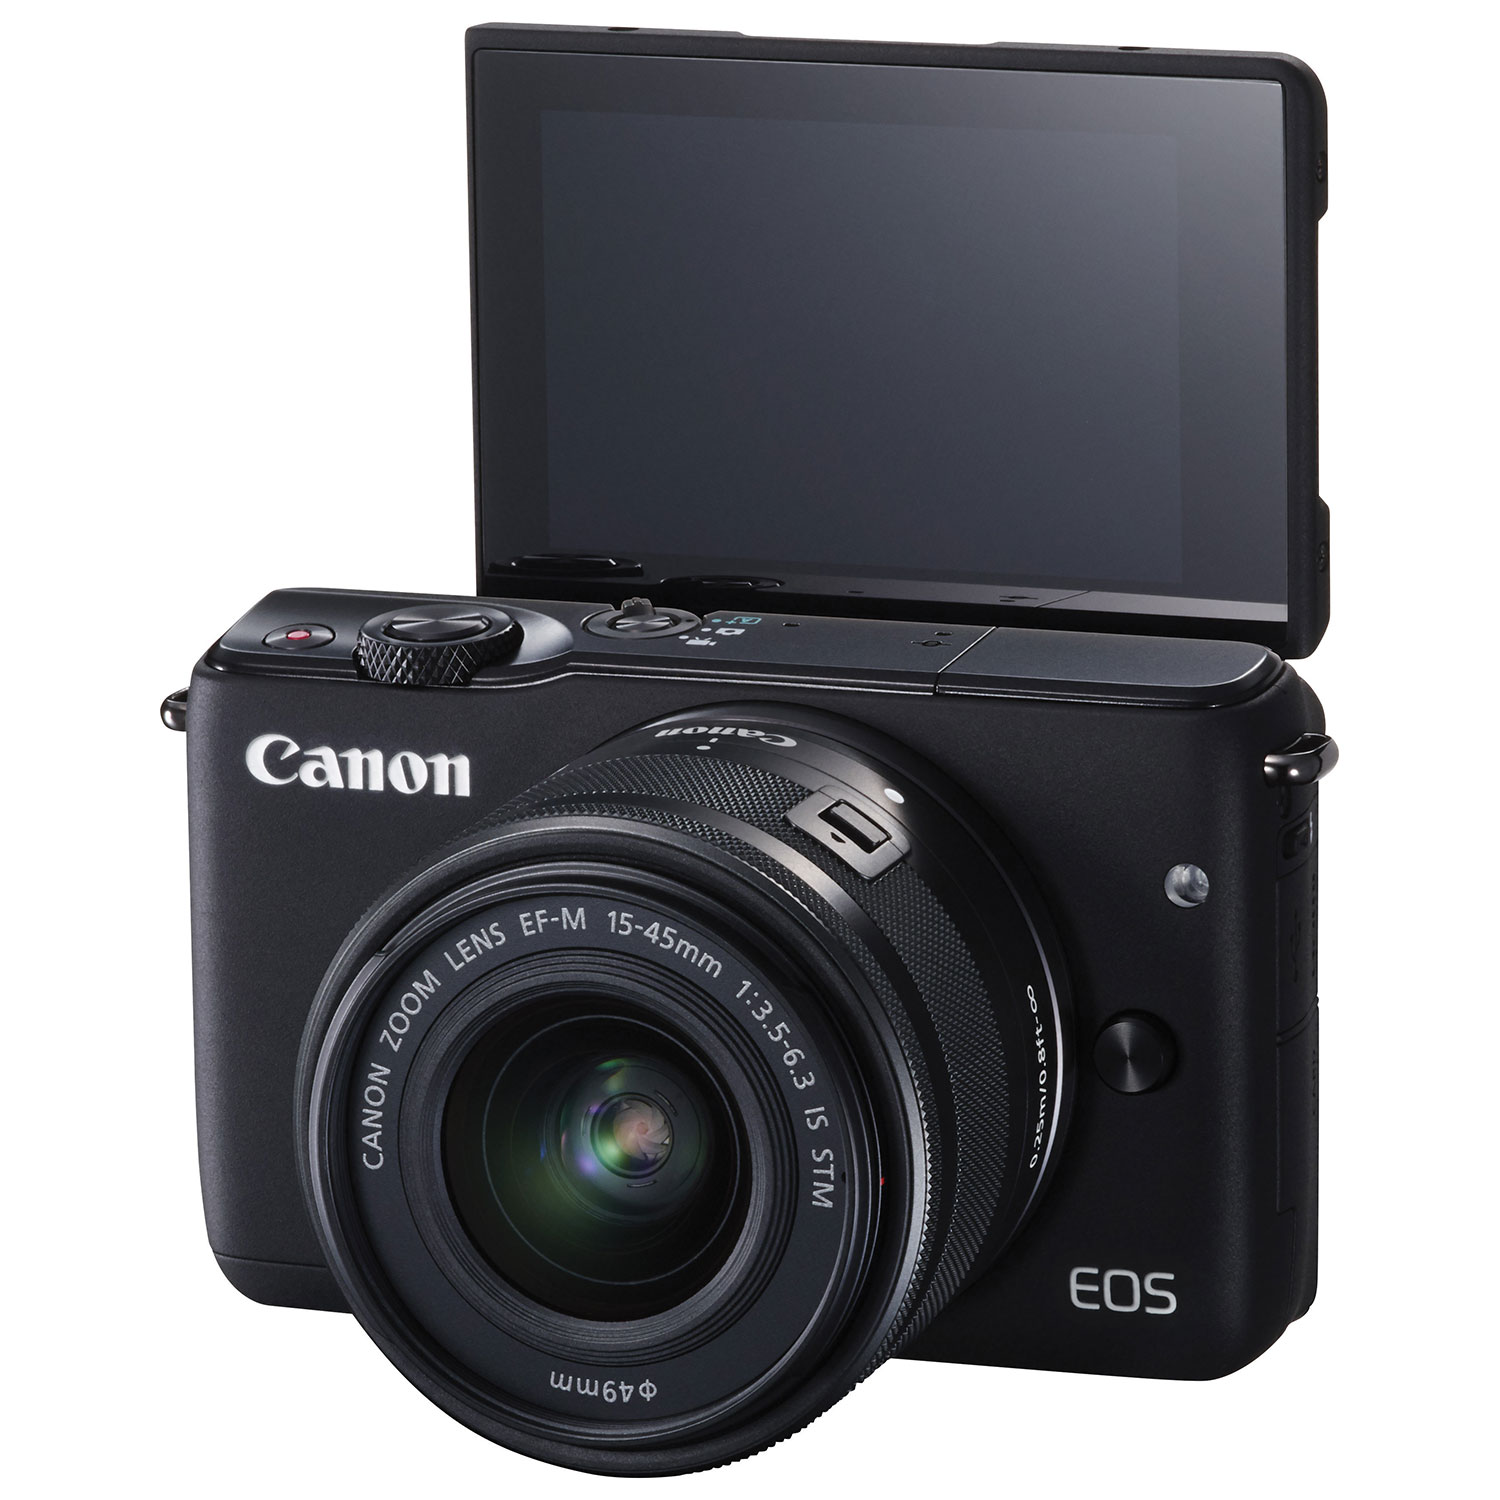 Canon EOS M10 Mirrorless Camera with 15-45mm Lens Kit : Mirrorless ...